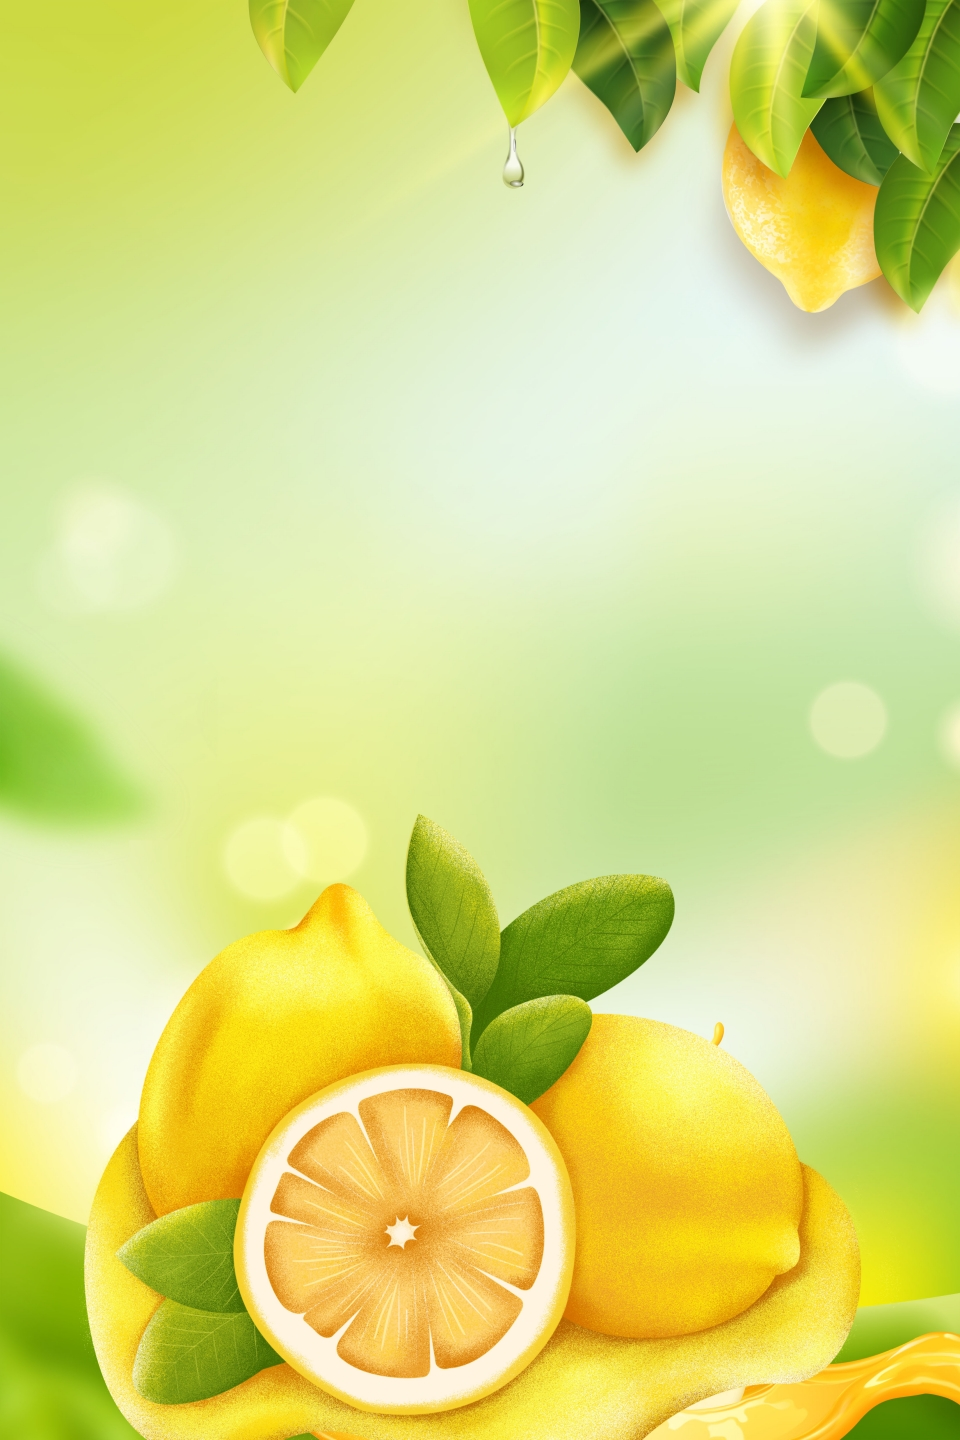 refreshing summer drink with lemon background refreshing summer summer refreshing background image for free download https pngtree com freebackground refreshing summer drink with lemon background 1109069 html